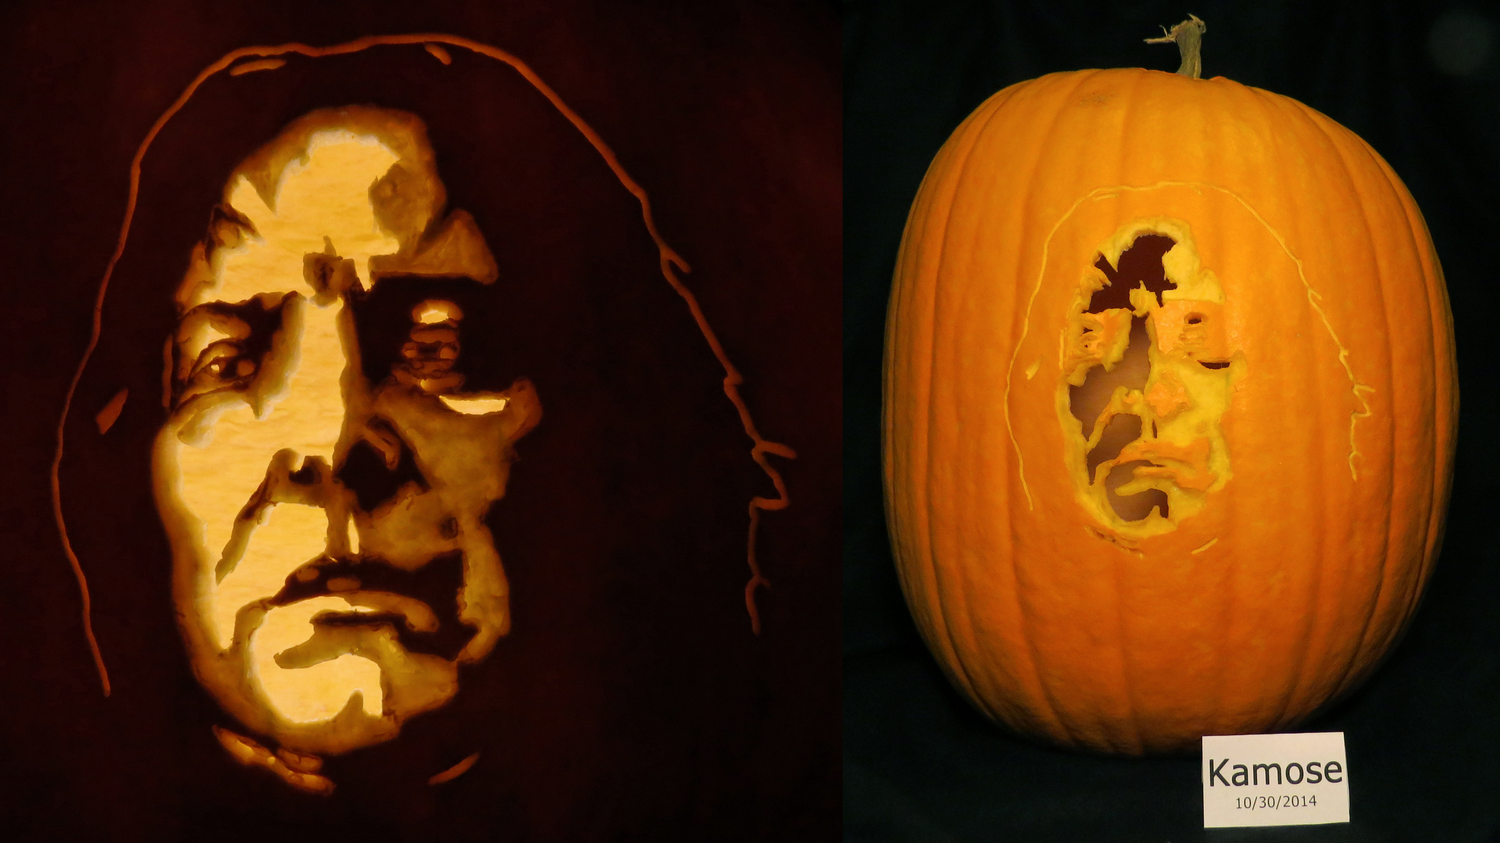 Severus Snape Pumpkin (From Harry Potter) by Kamose on DeviantArt